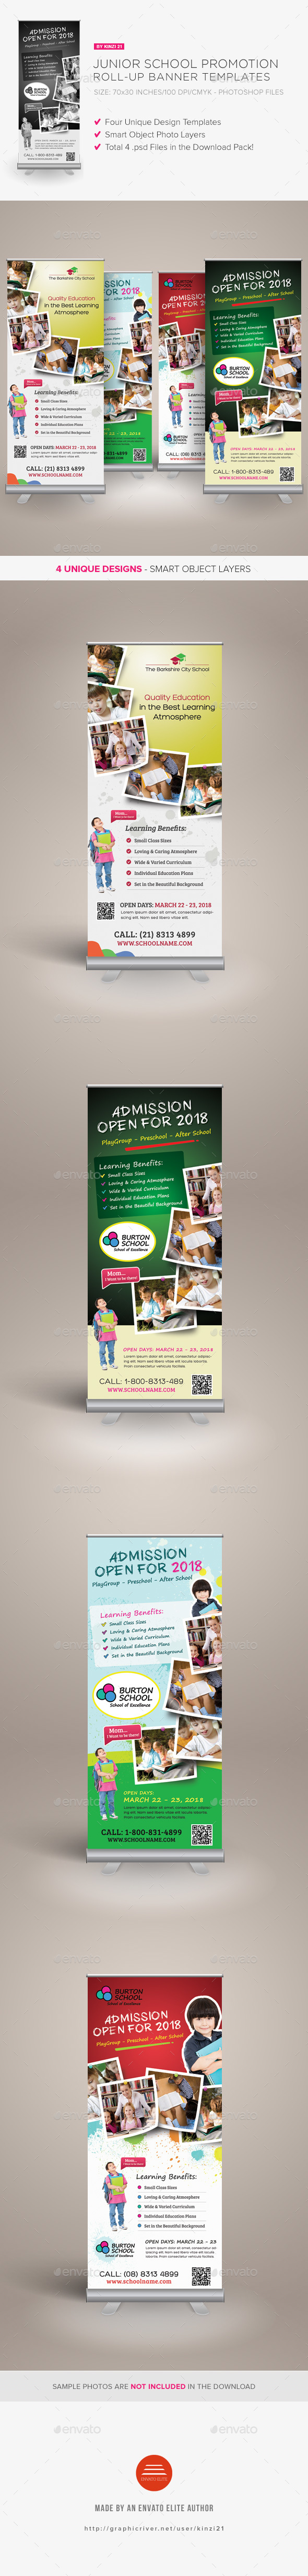 Junior School Promotion Roll-up Banners - Signage Print Templates